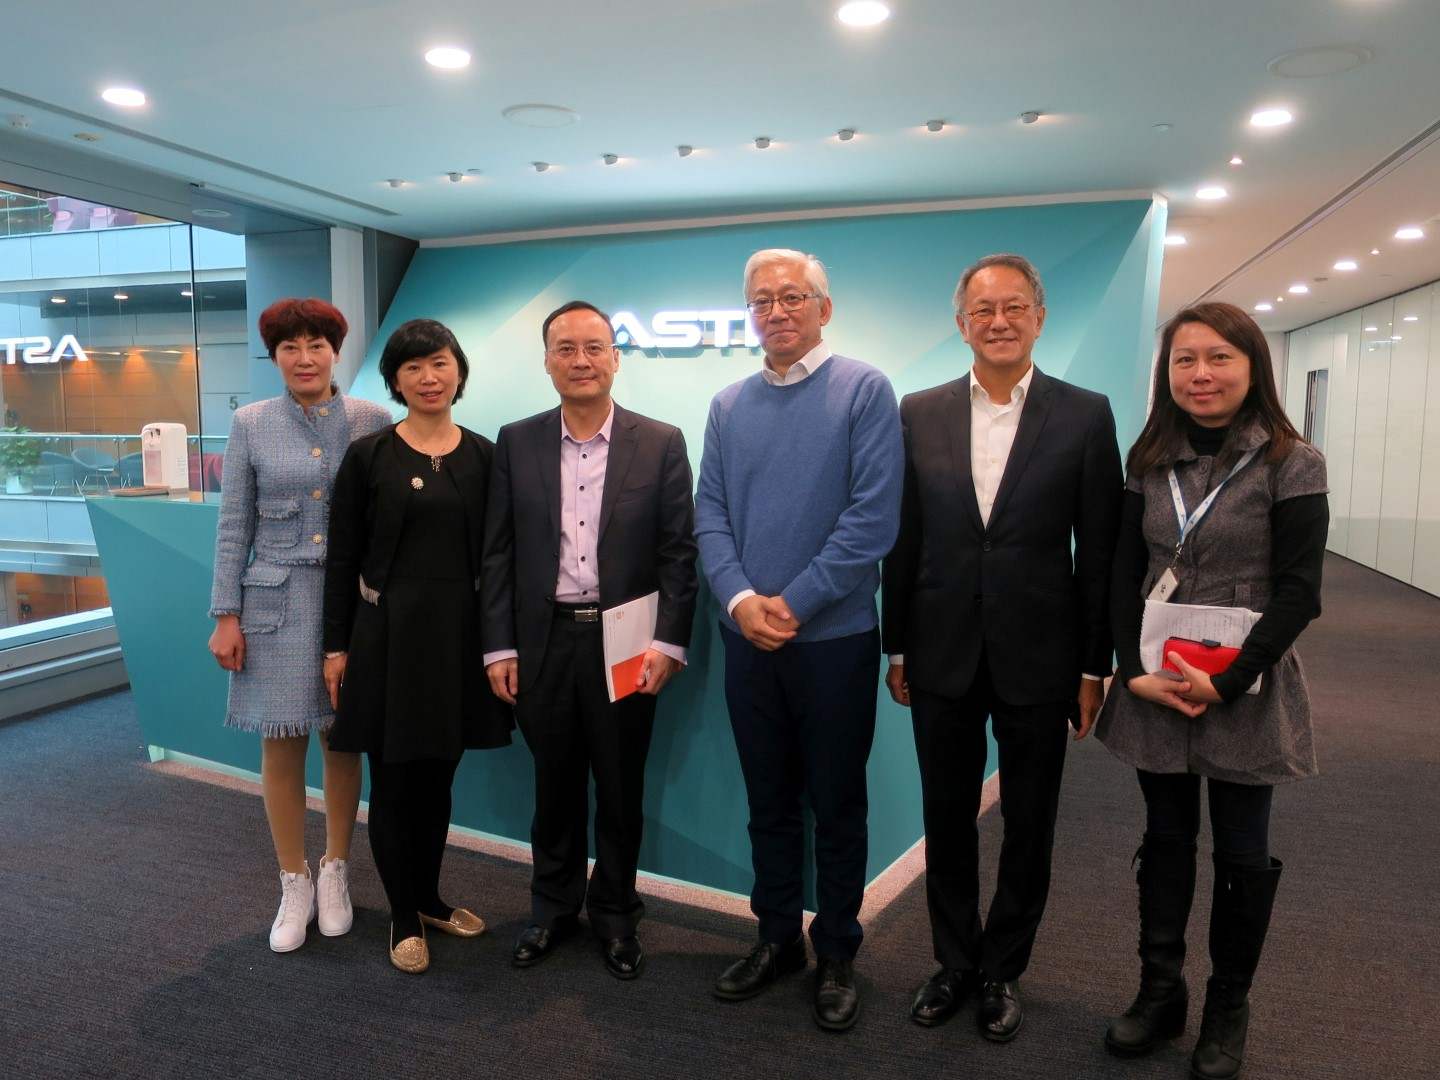 Chairman of China Industrial Technology Innovation Committee and Chief Executive Officer of HNZH visit ASTRI